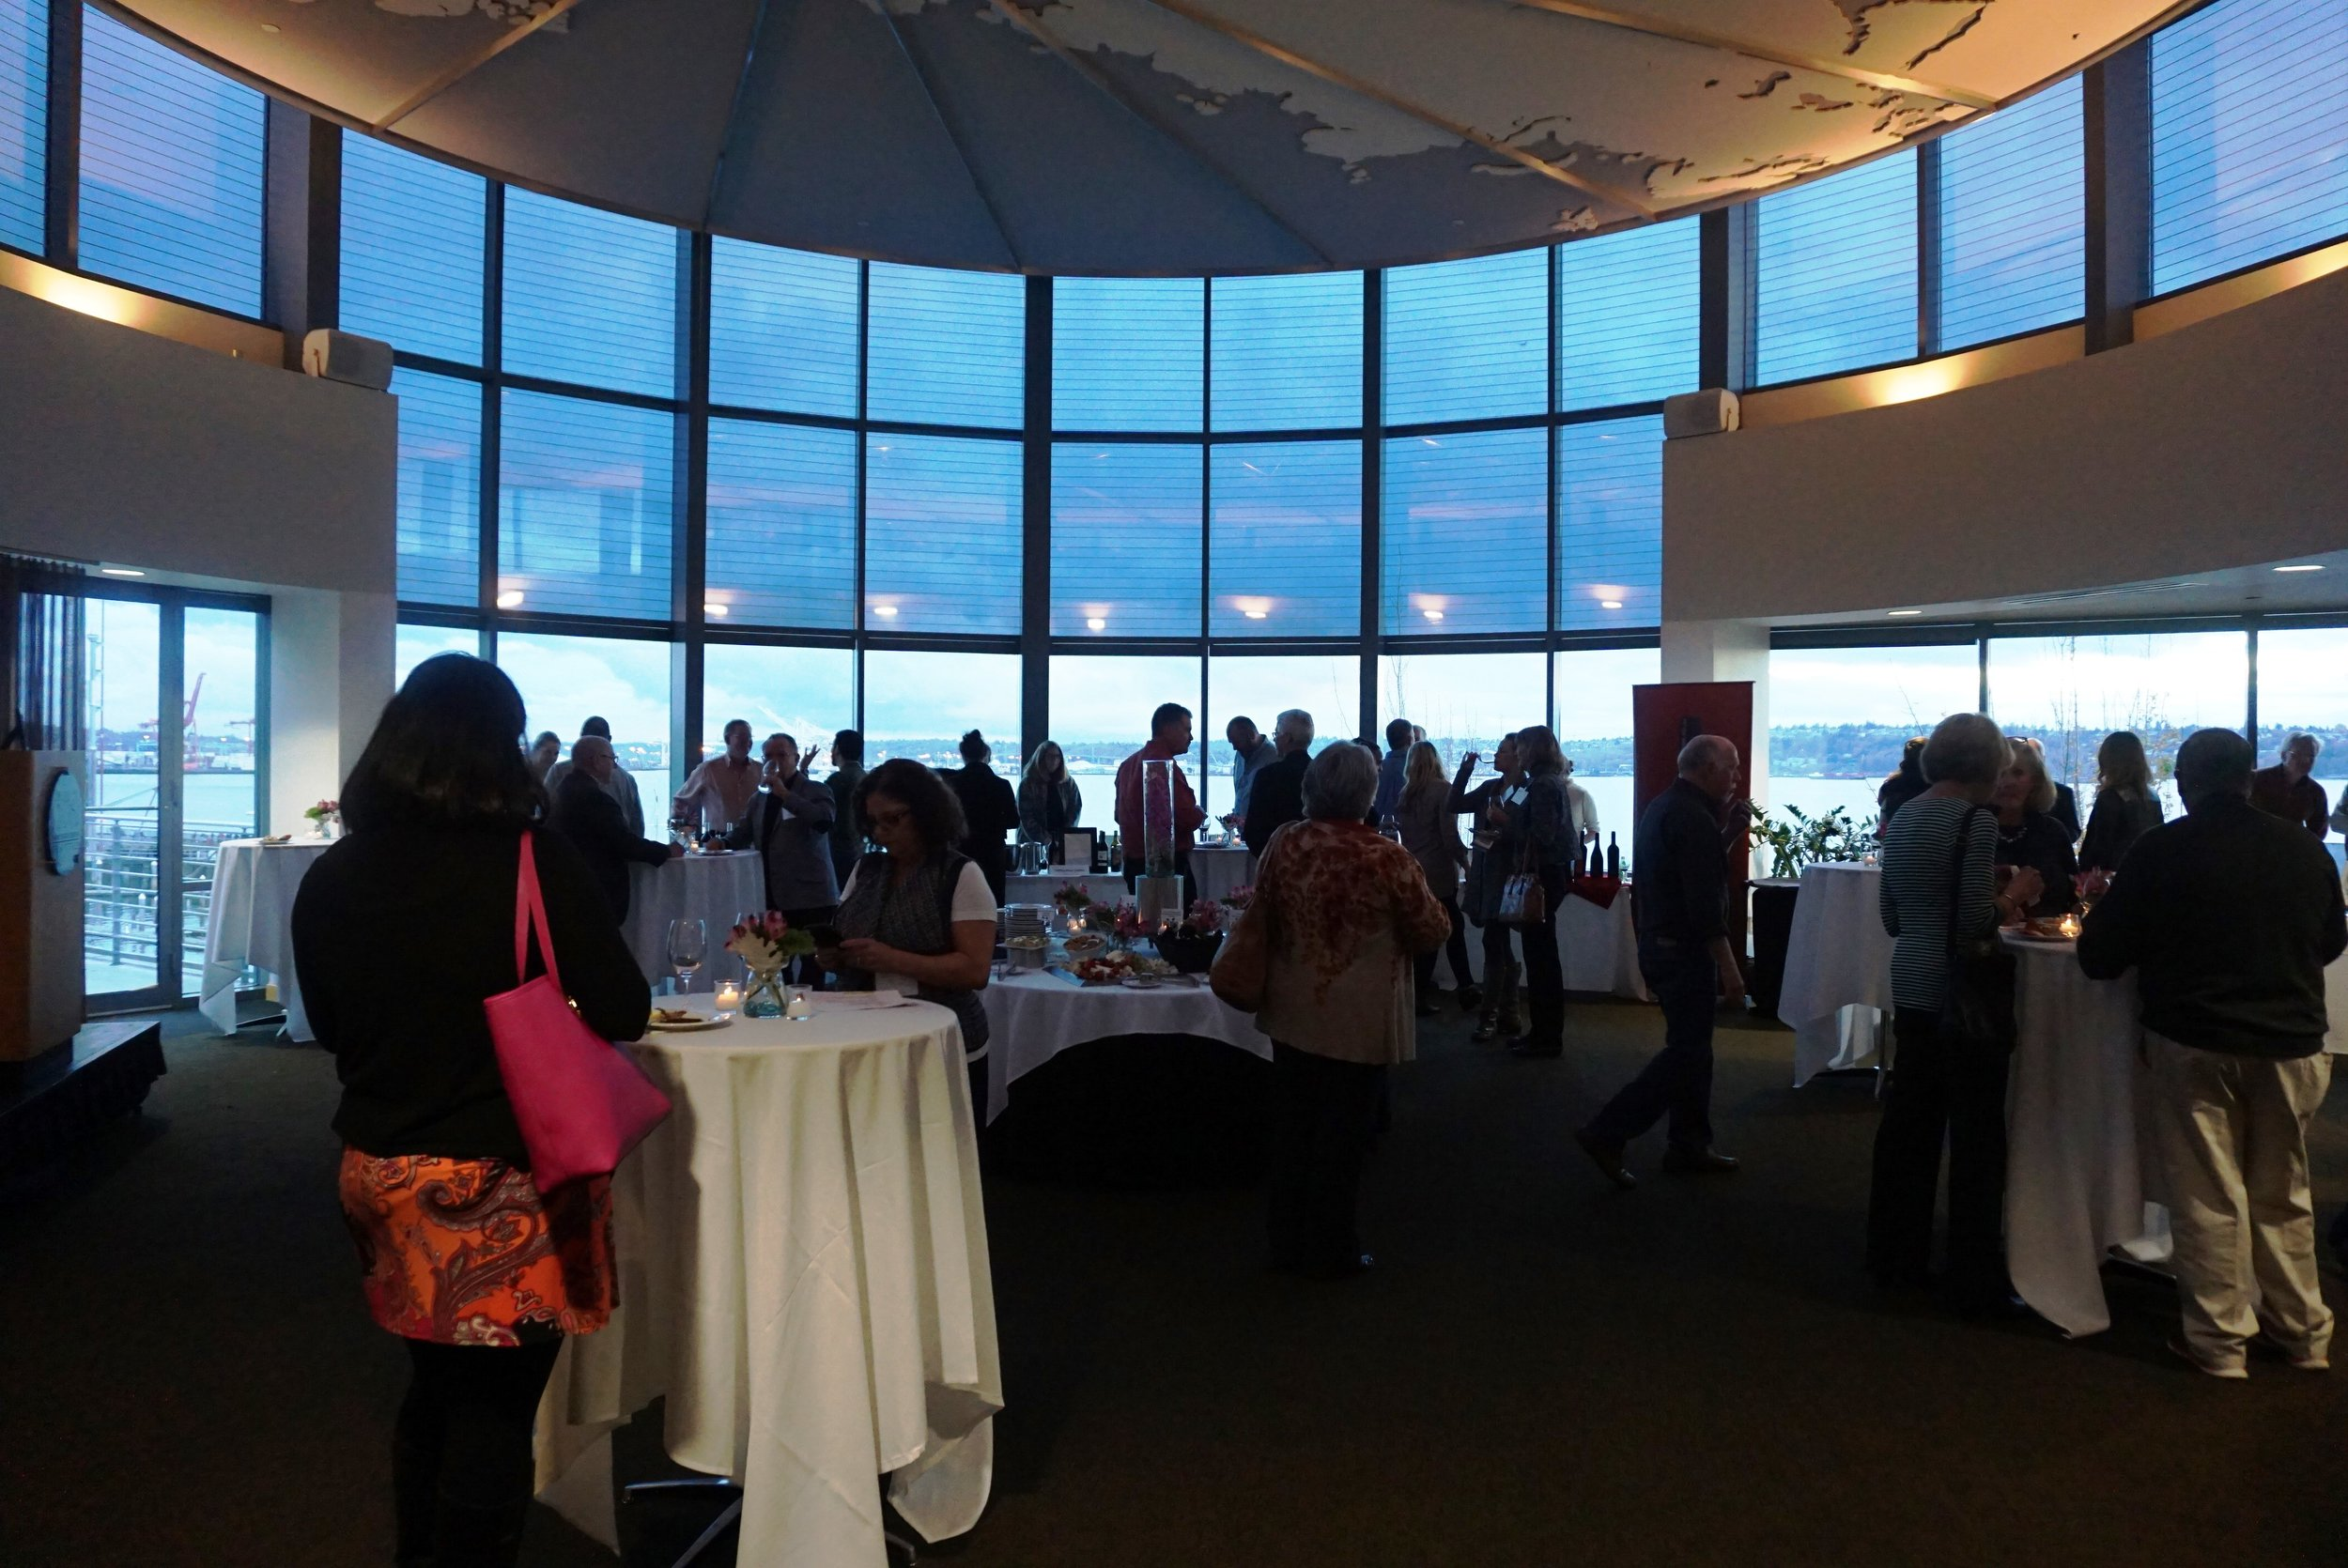 November's Washington State AVA Seattle Urban Wineries tasting, held on the fourth floor of The World Trade Center Seattle, afforded a stunning 180-degree water view. Viki Eierdam